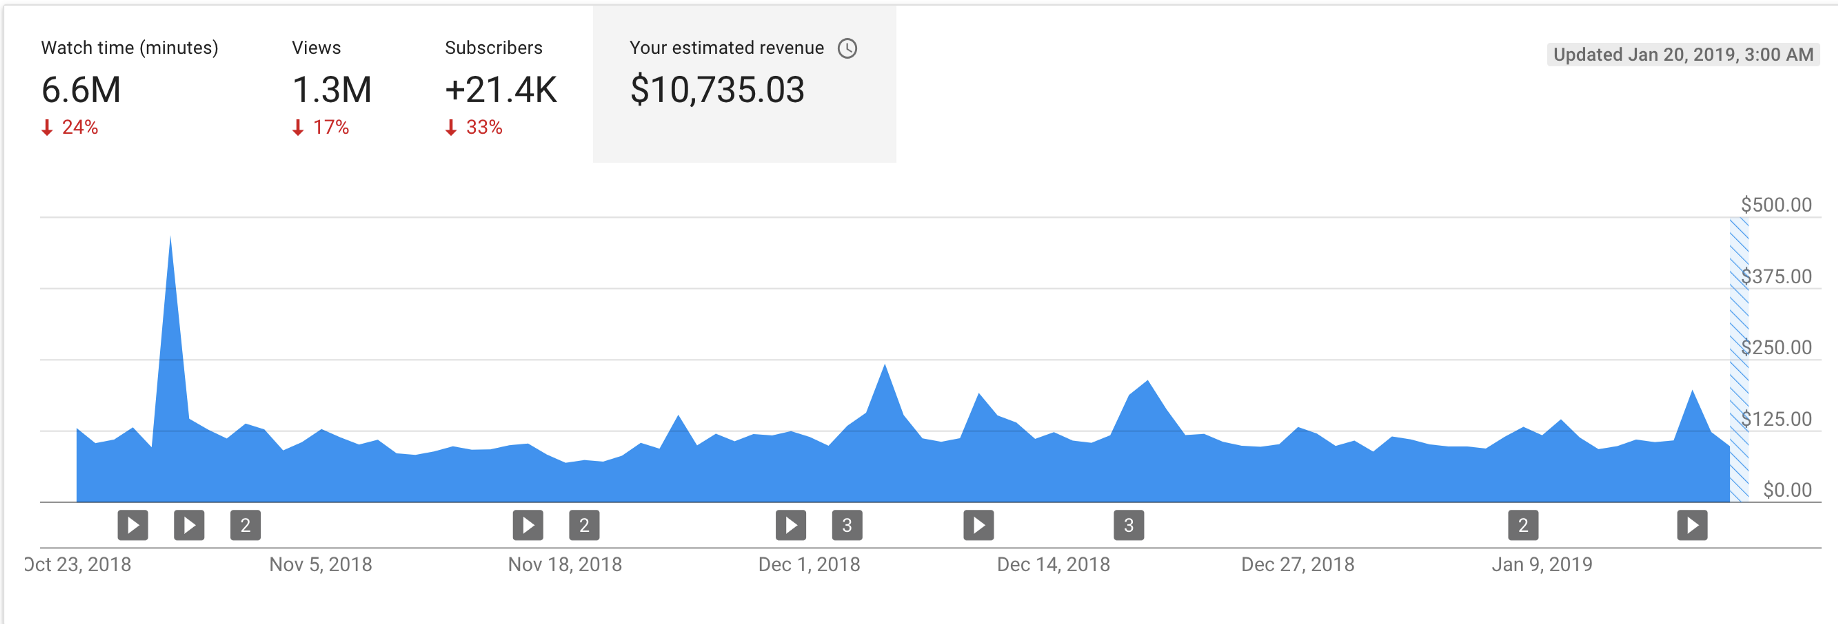 How to Triple YouTube Adsense Earnings and Make More Money On YouTube